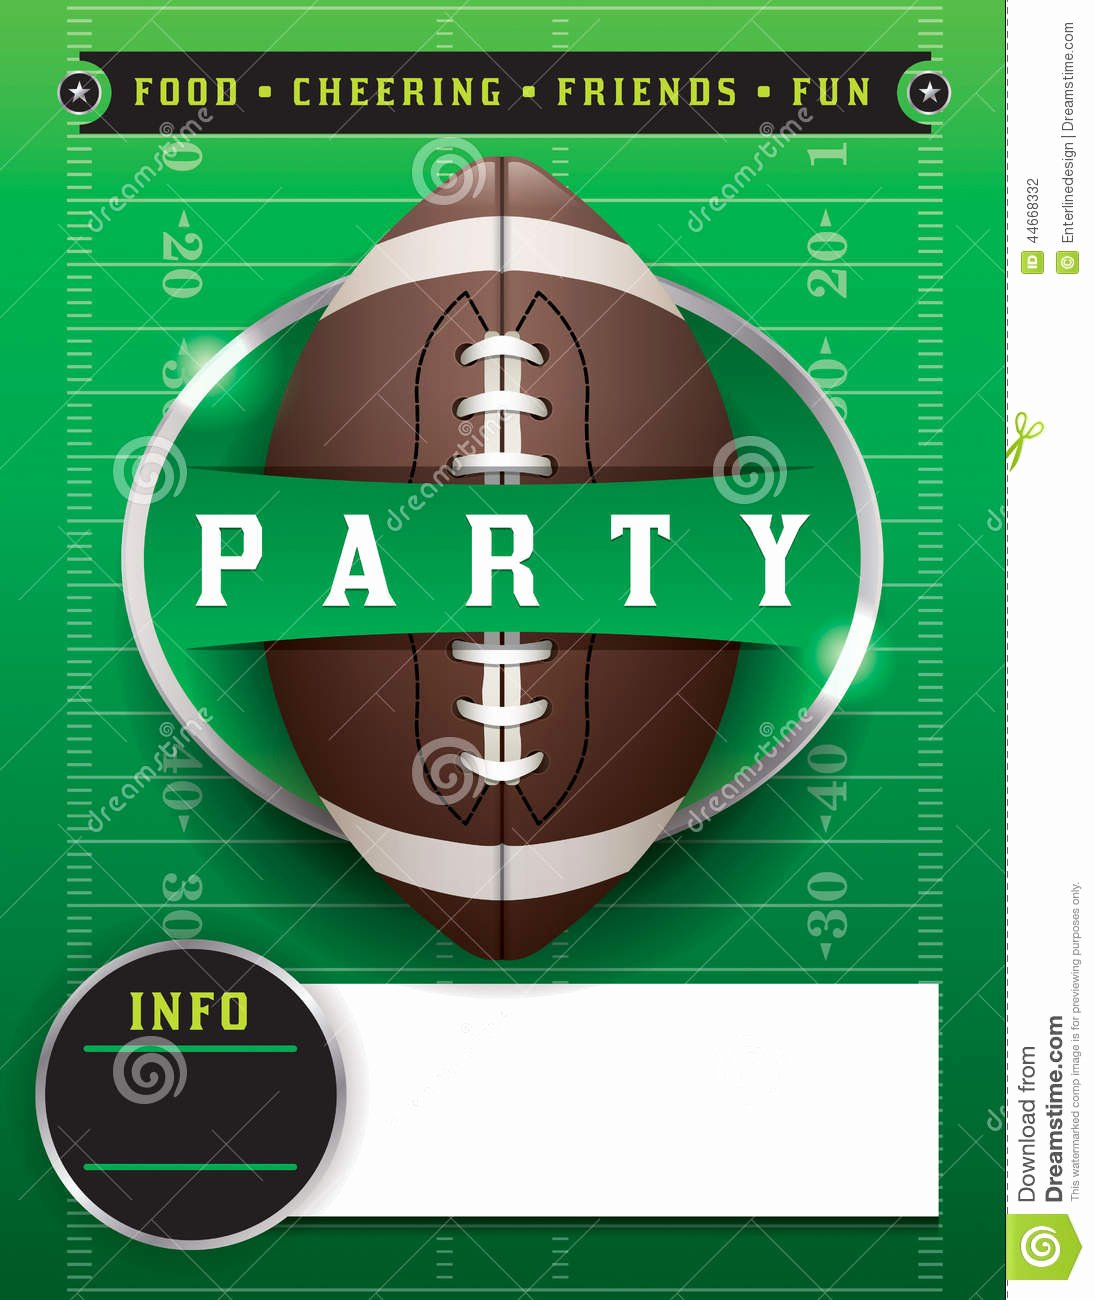 stock illustration american football party template illustration vector eps available eps contains transparencies fonts have been converted to image